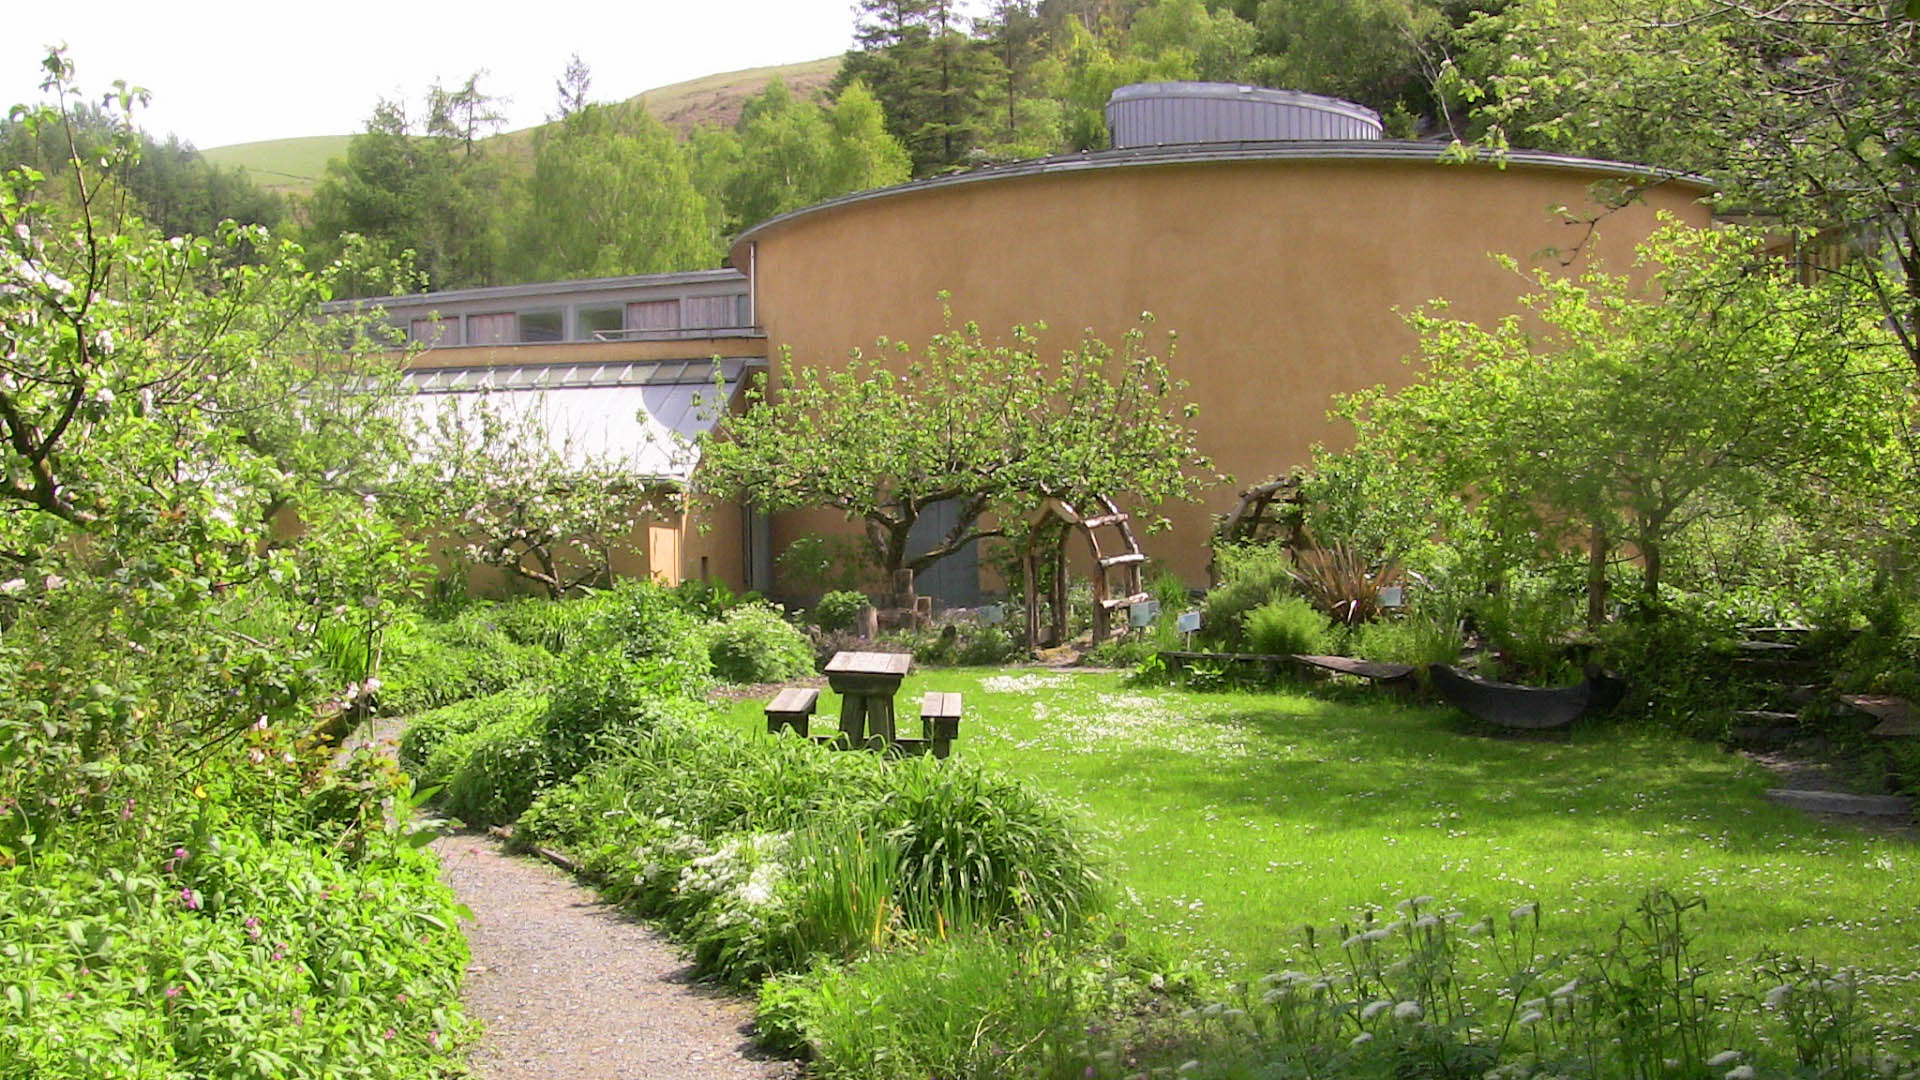 garden outside the Wales Institute of Sustainable Education